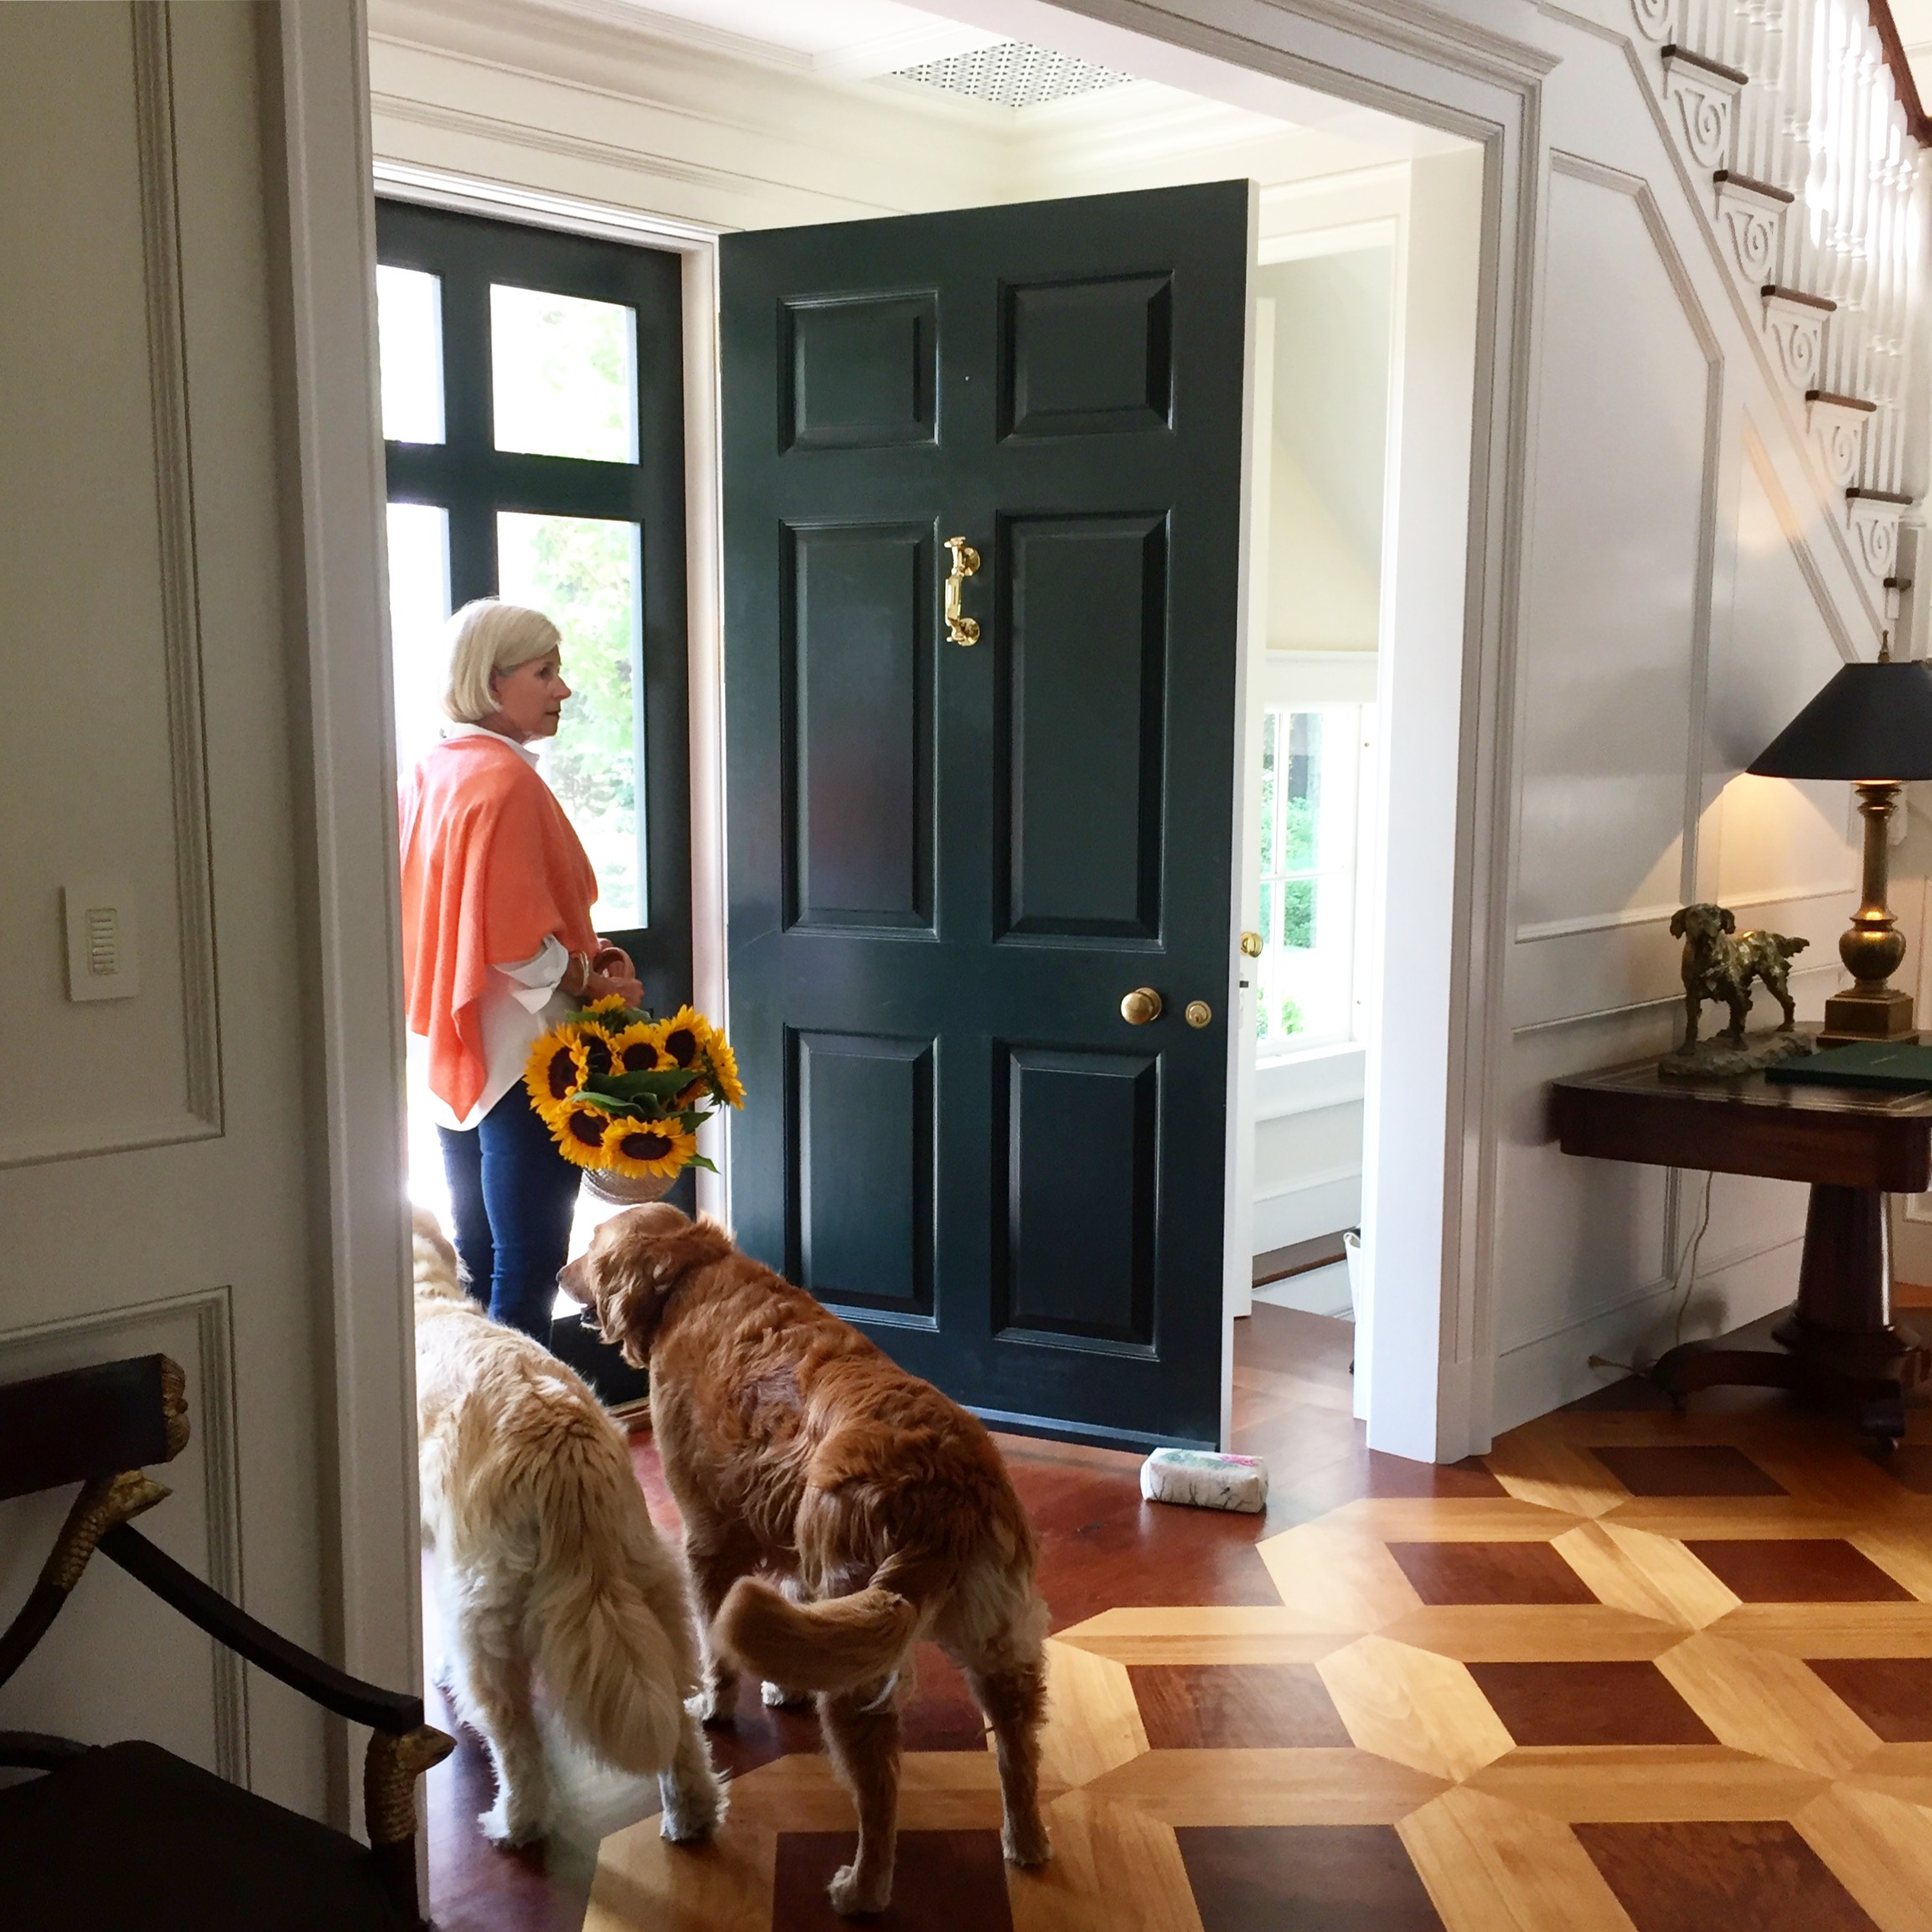 Lauren and her three dogs (one is already outside) at the entryway of woodstone - photo: linda davis